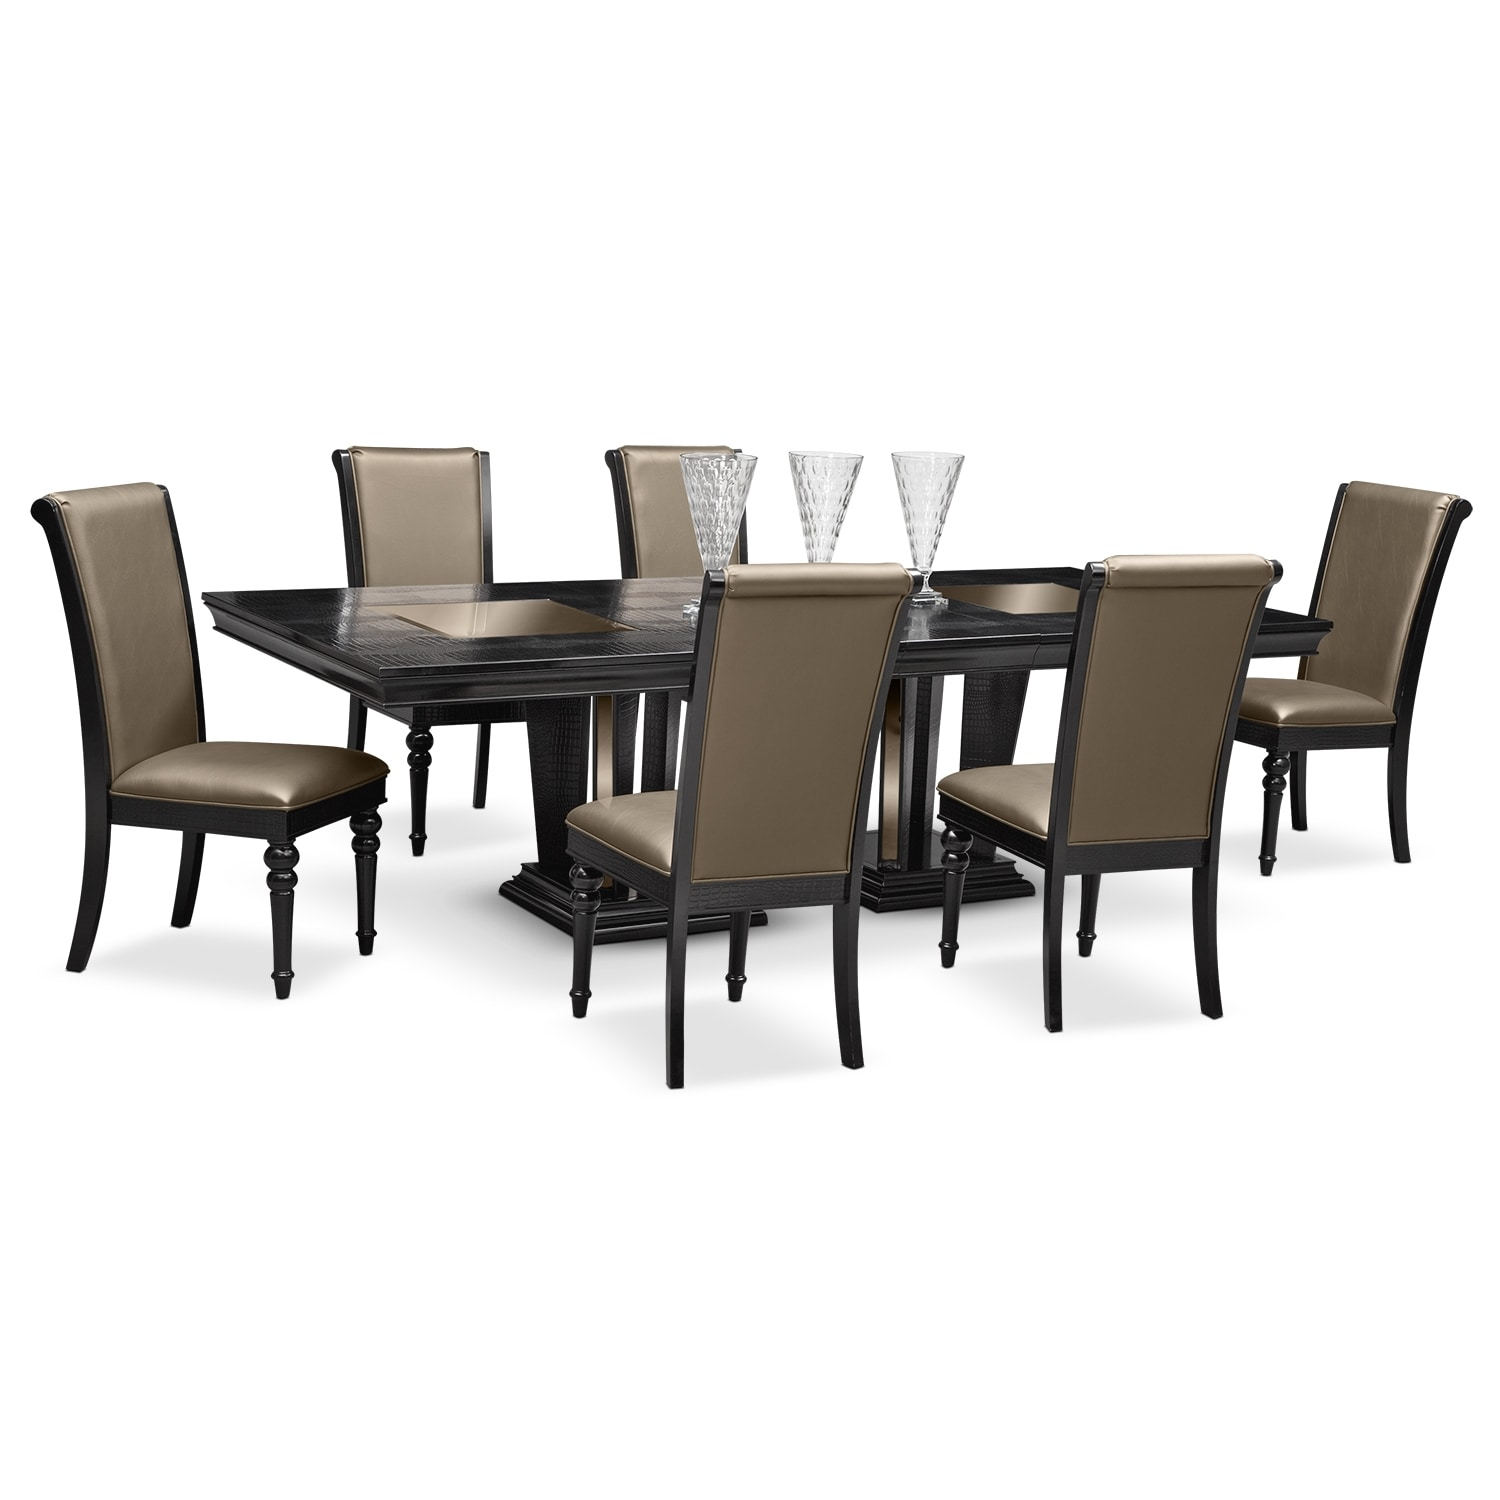 City Furniture Dining Room Paradiso 7 Pc Dining Room 288757 Paradiso 7 Pc Dining Room Kitchen